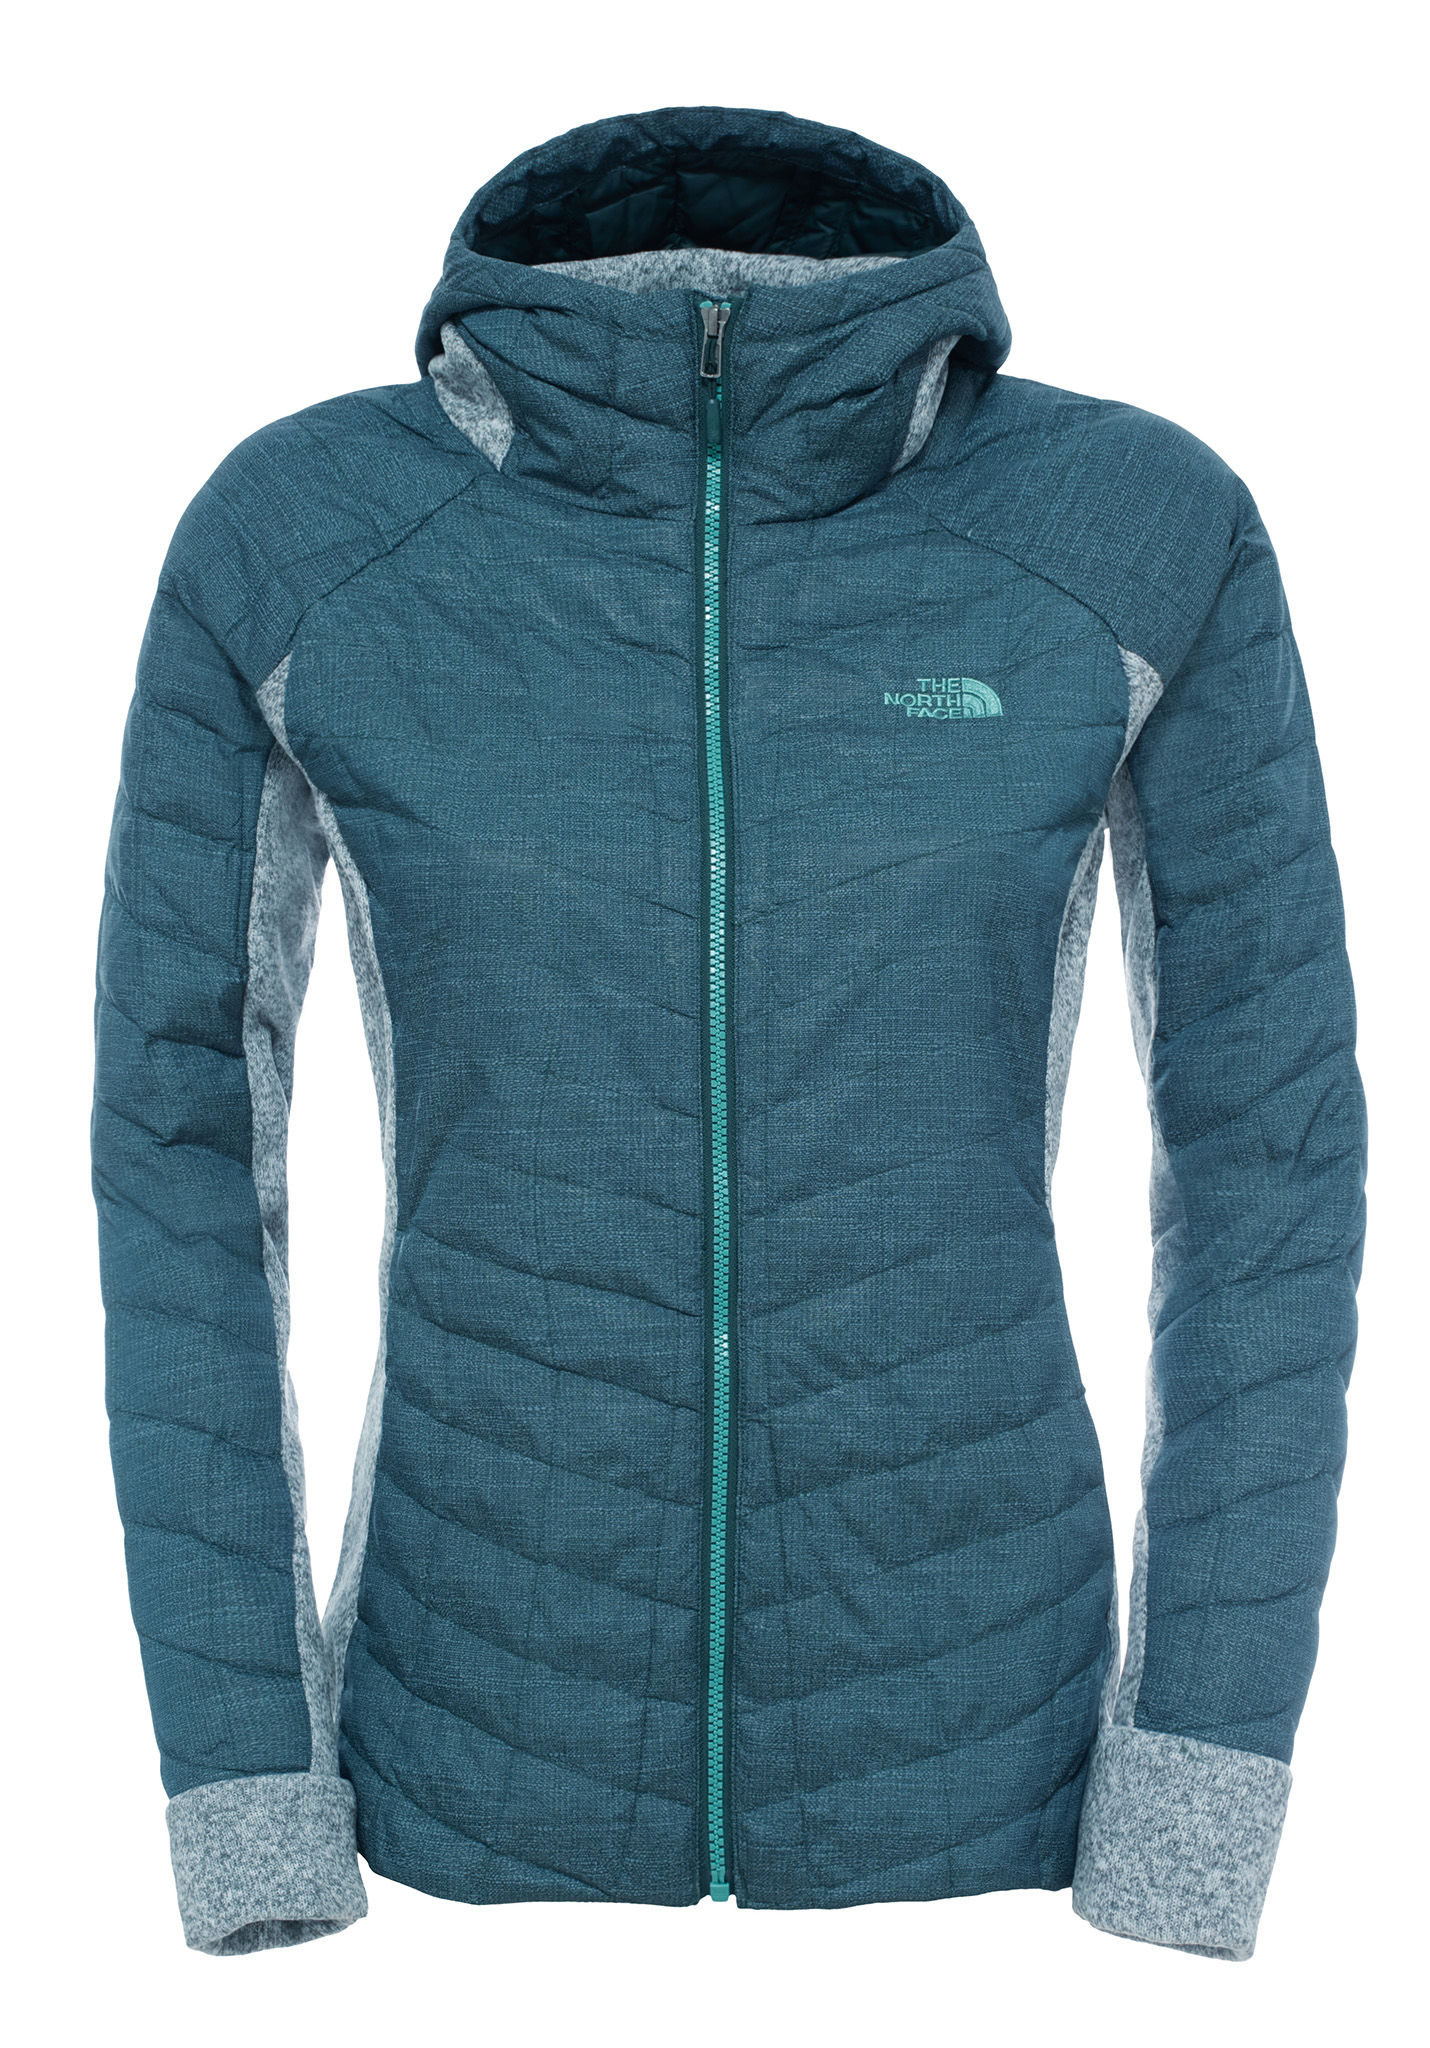 Buy The North Face Thermoball Plus Insulated Women s Hoodie 67ea1fb17b